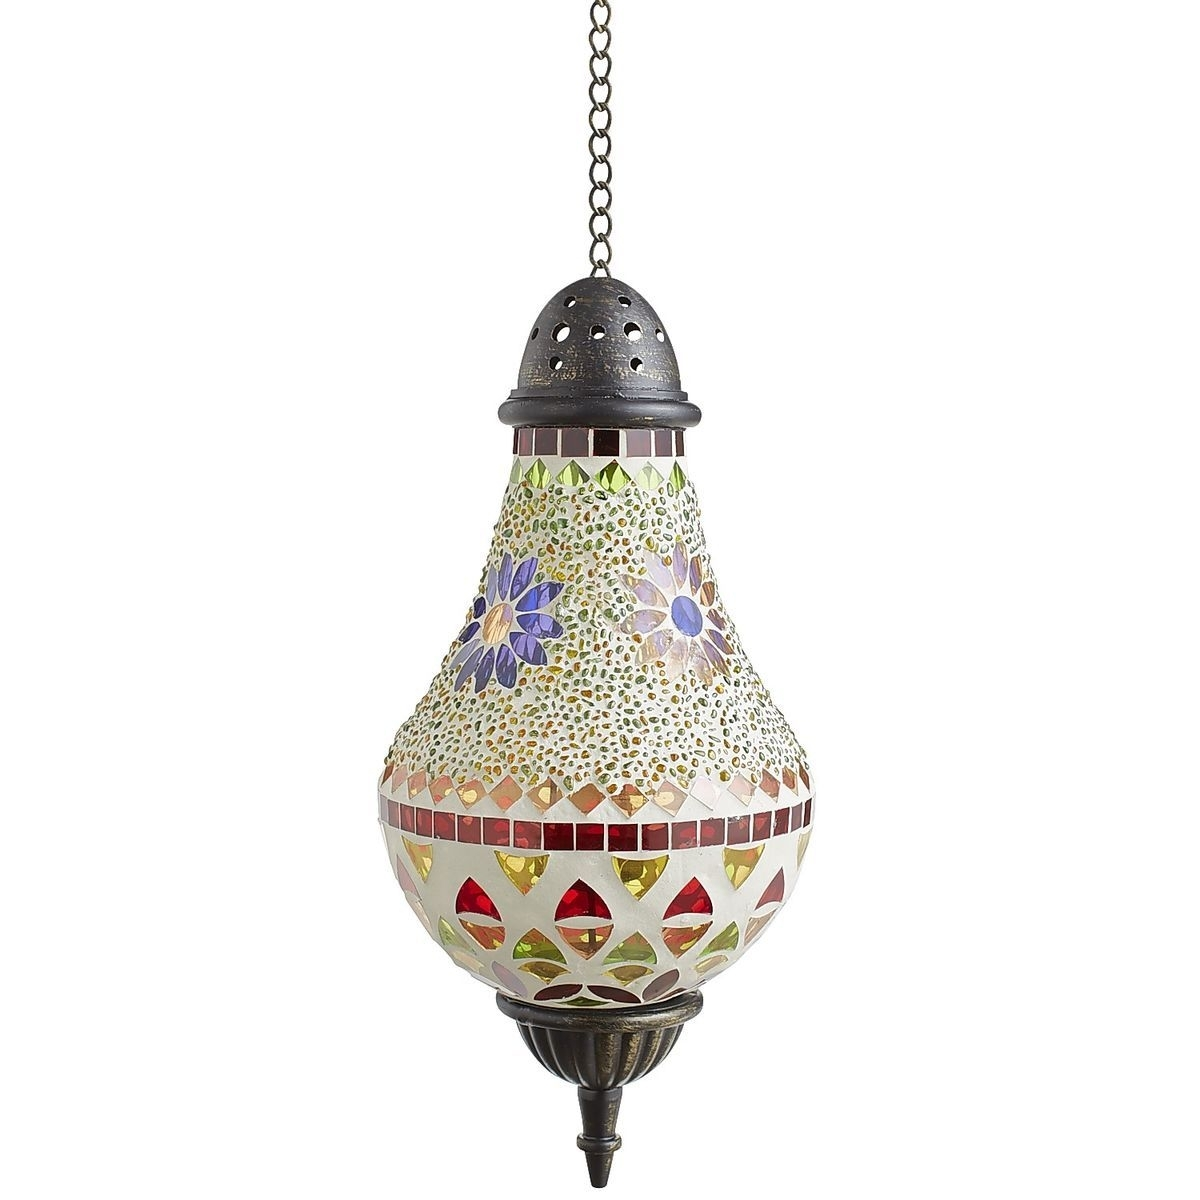 Mosaic Flower Hanging Lantern | Pier 1 Imports | Dream Home Throughout Outdoor Mosaic Lanterns (View 11 of 20)